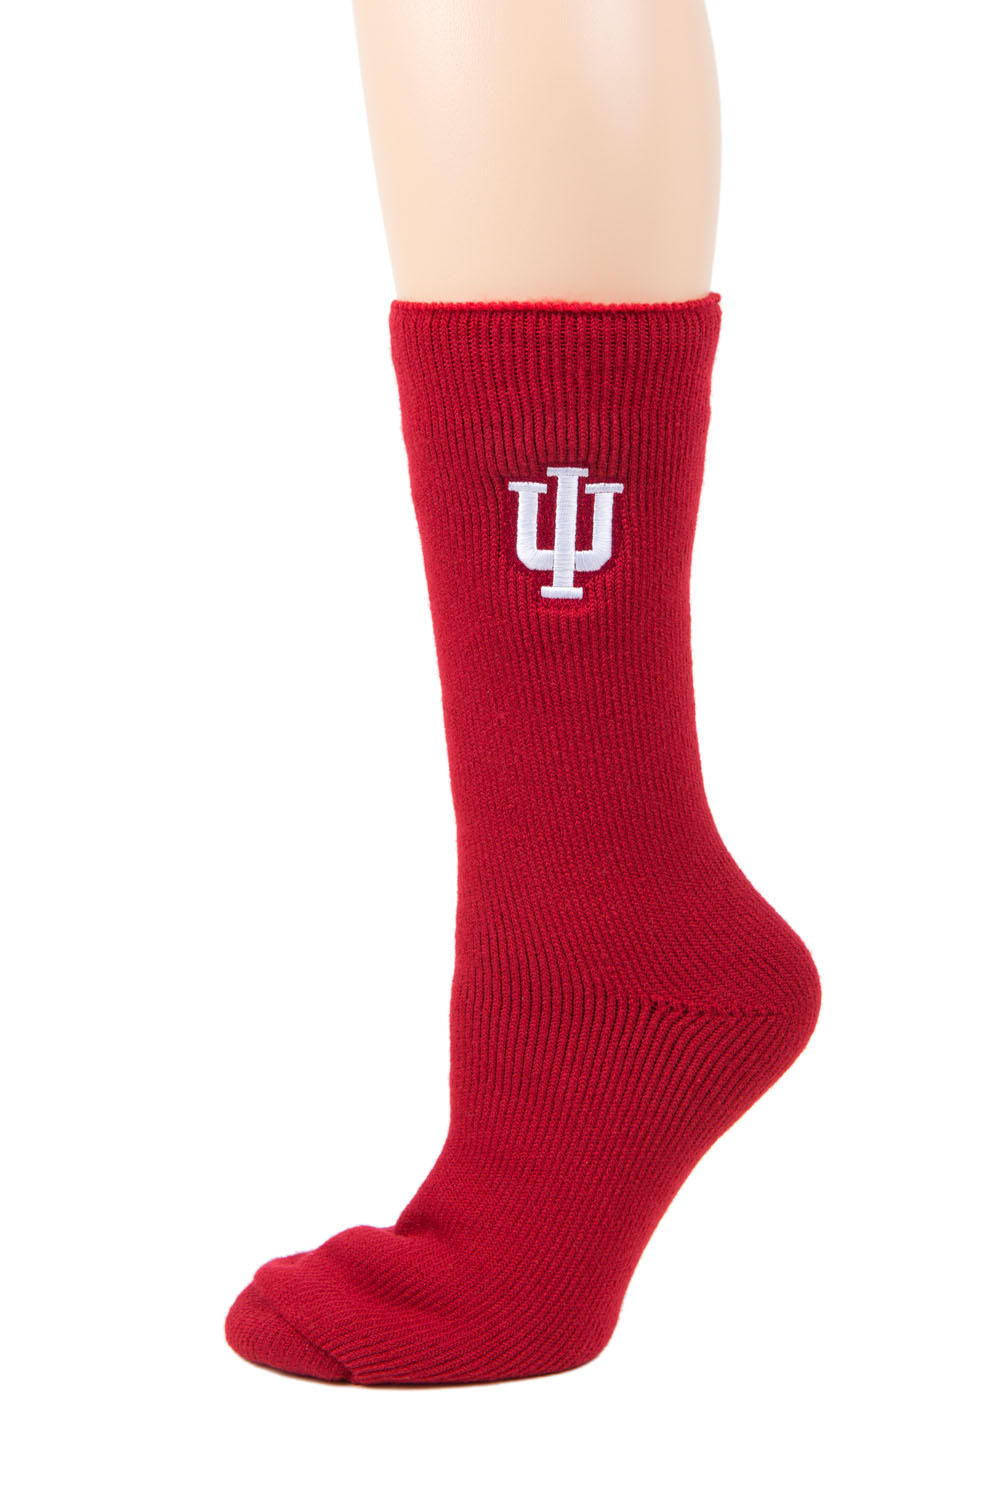 Indiana Hoosiers Red Thermal Sock by Donegal Bay